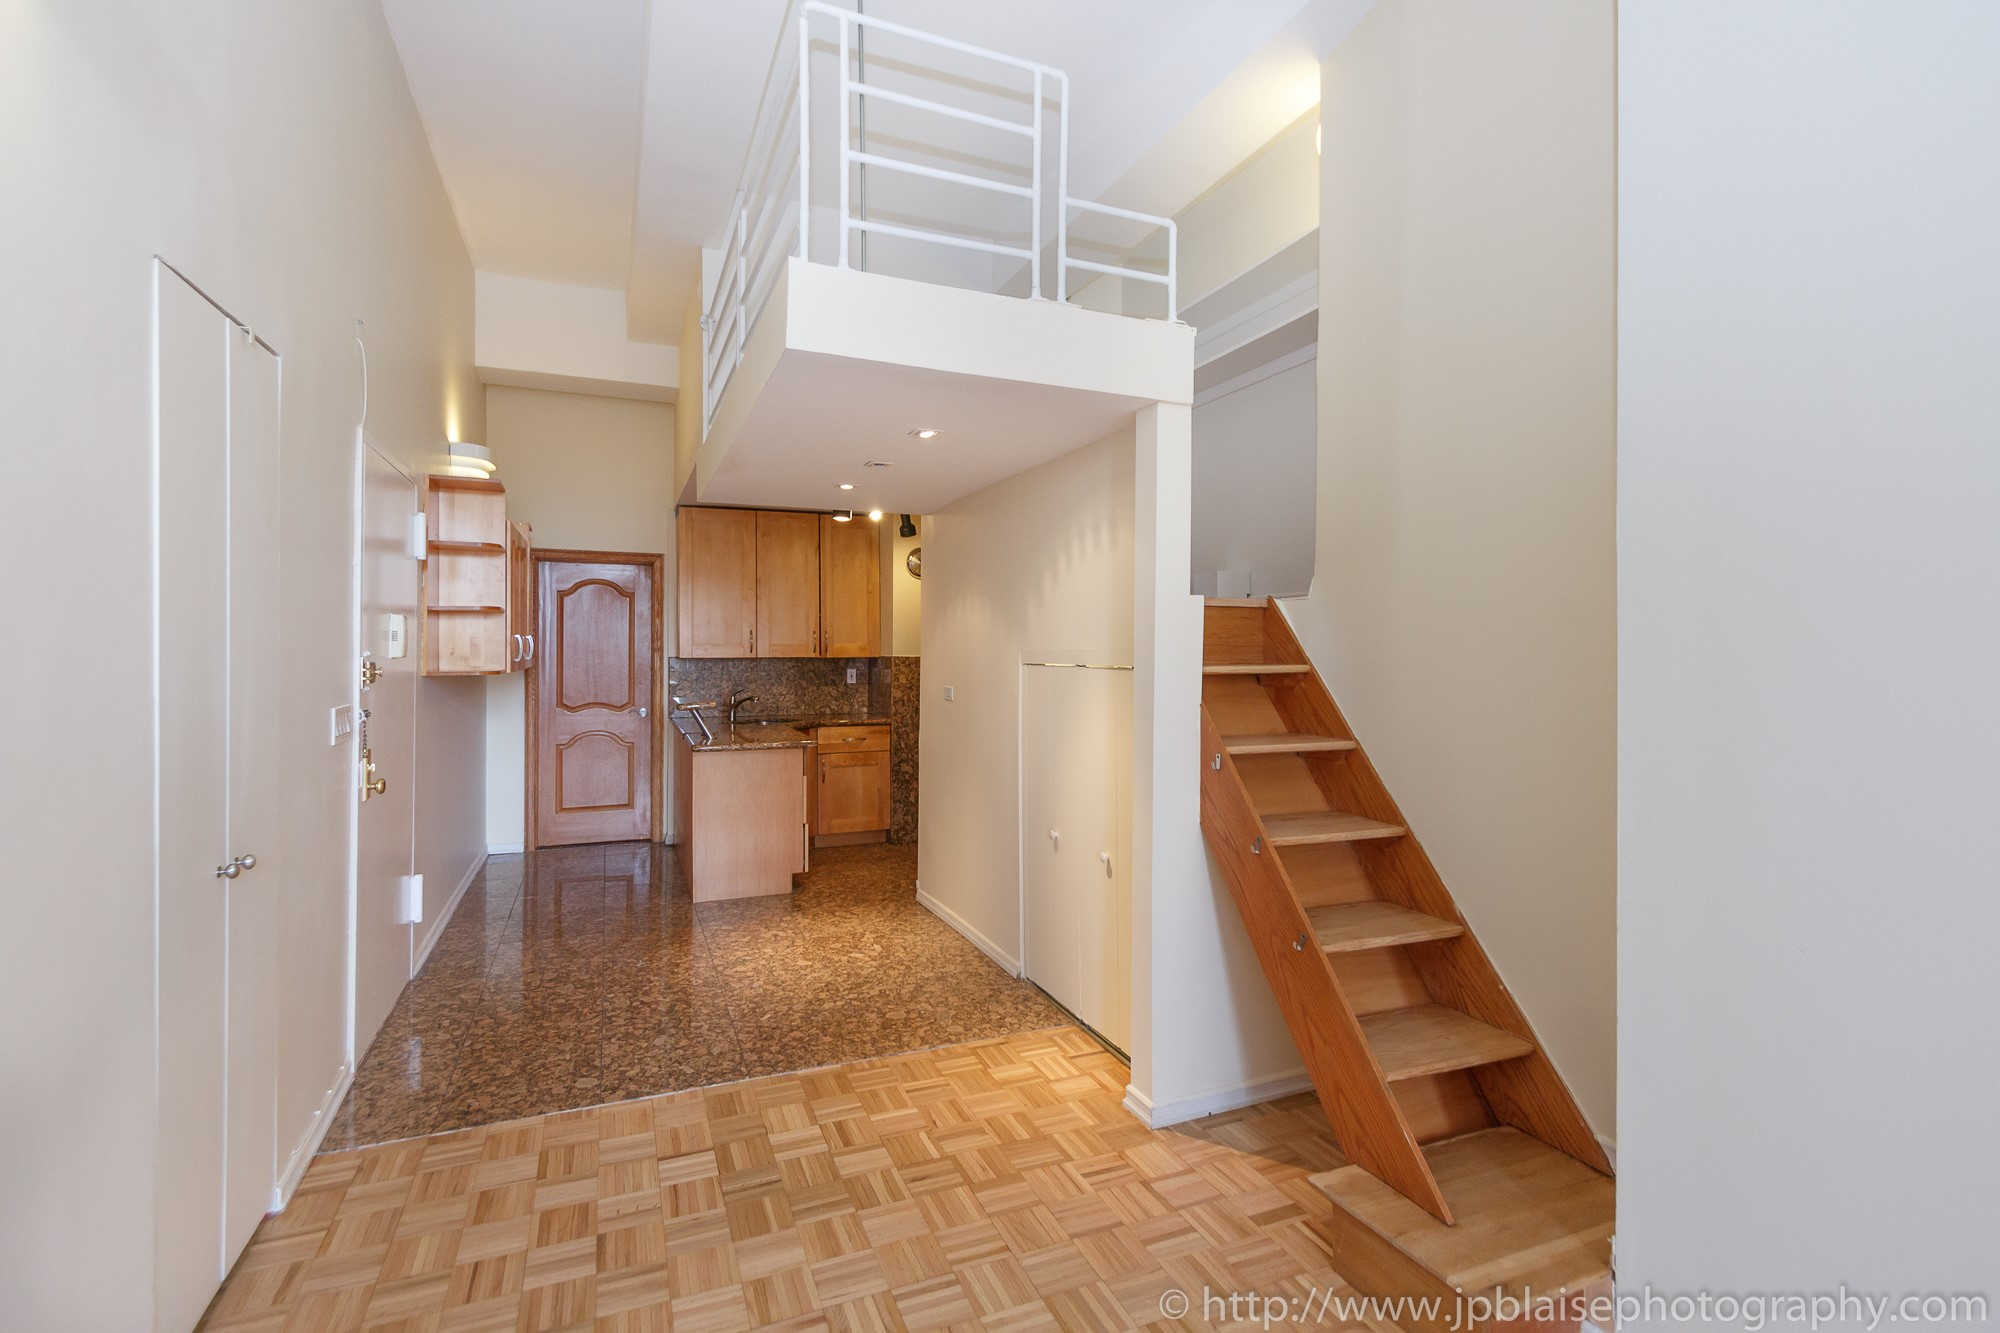 New- ork City apartment photographer Midtown East One Bedroom unit kitchen